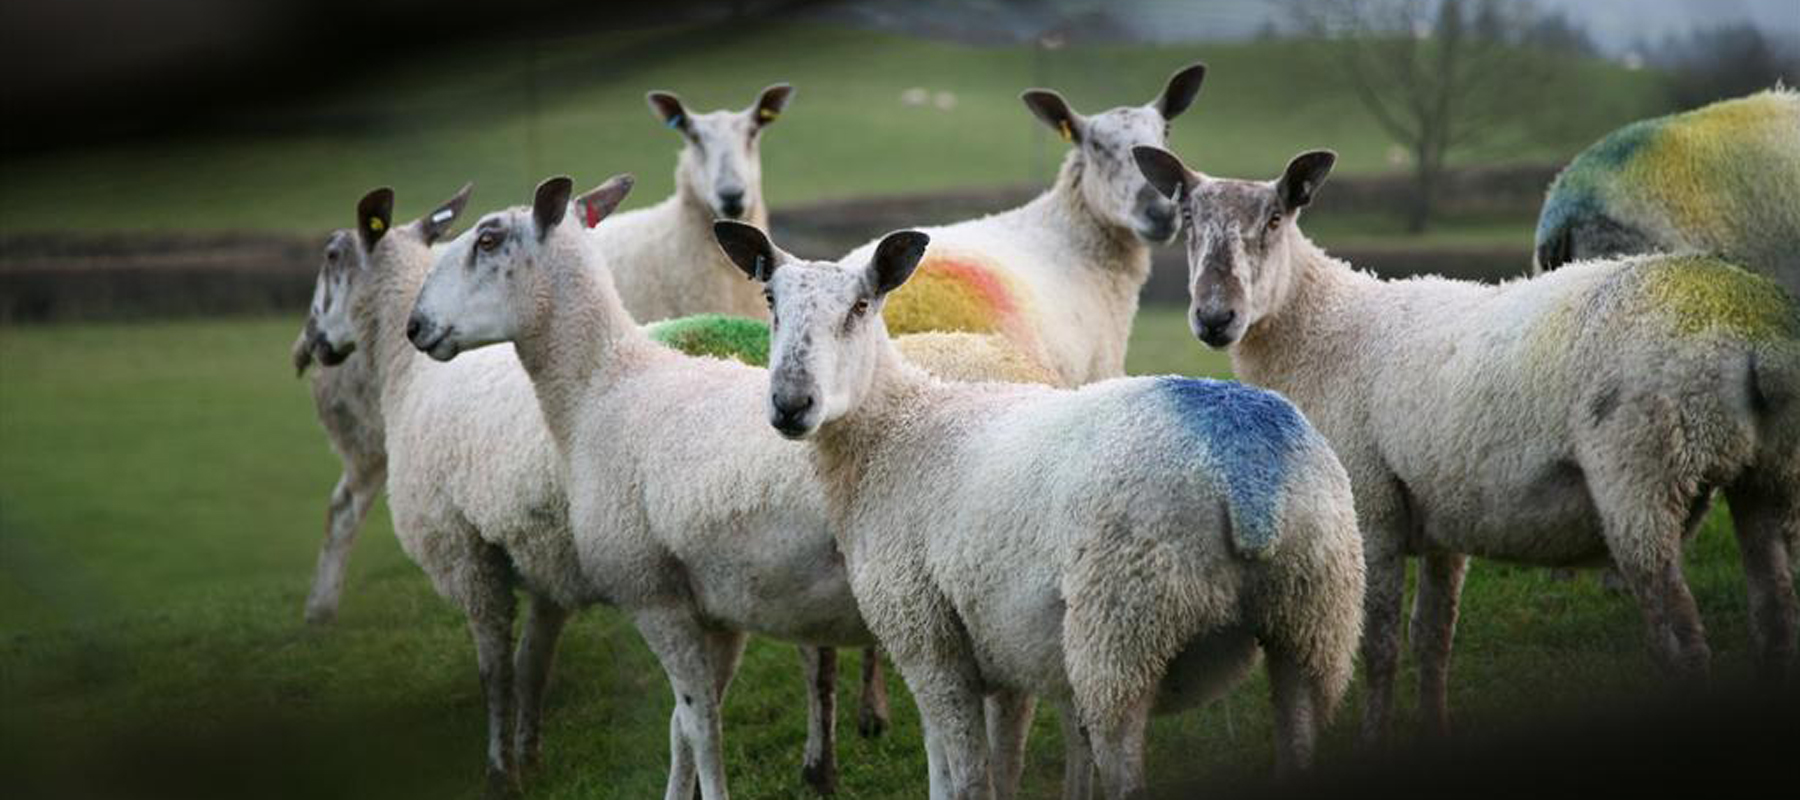 Bluefaced Leicesters (photo by Bonnysheep)